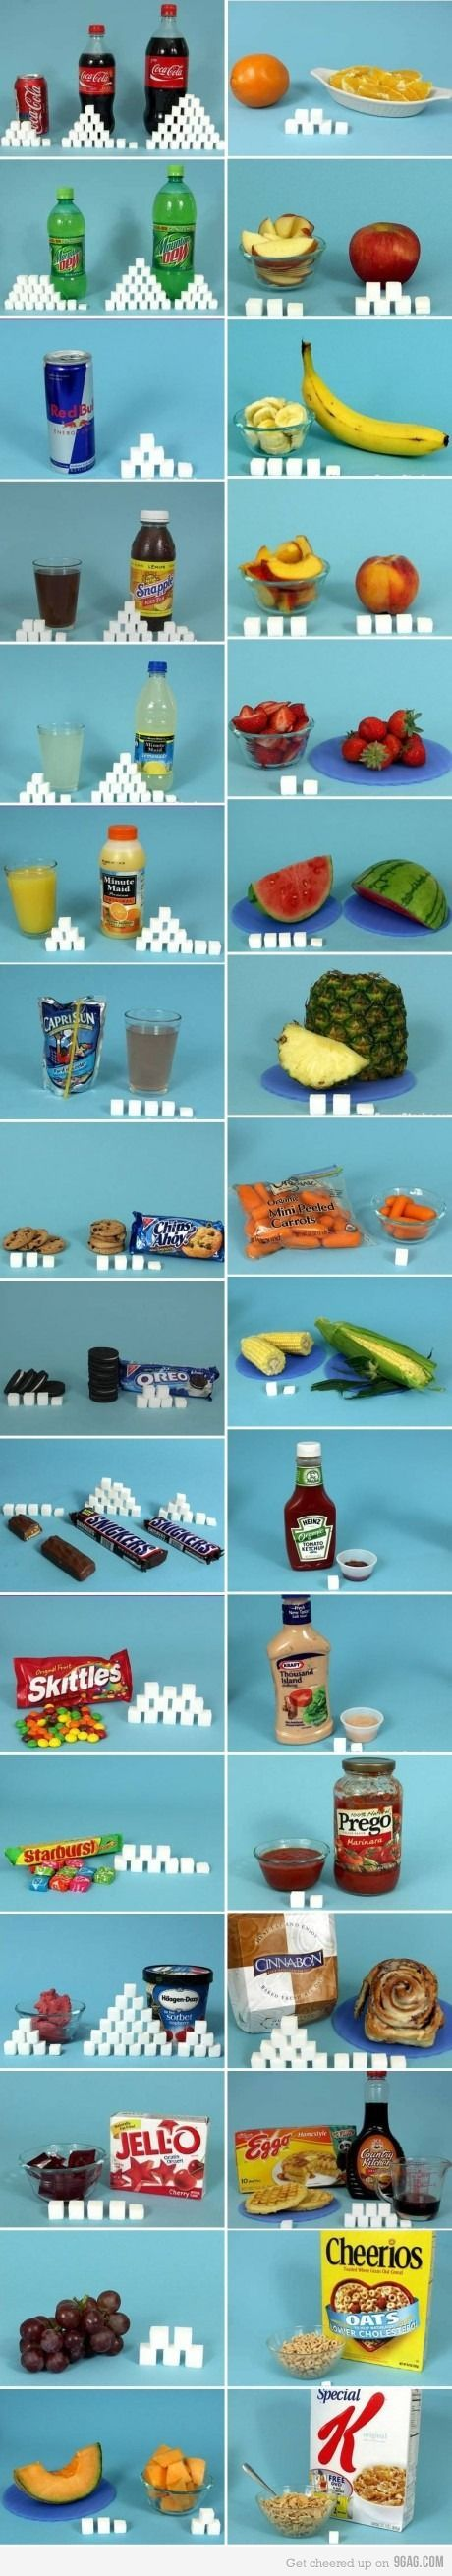 Would you sit eat 21 sugar cubes - well you just did if you drank a bottle of REG softdrink! makes you think..this is something we should be looking at more often! 4th Grade: Food Nutrition